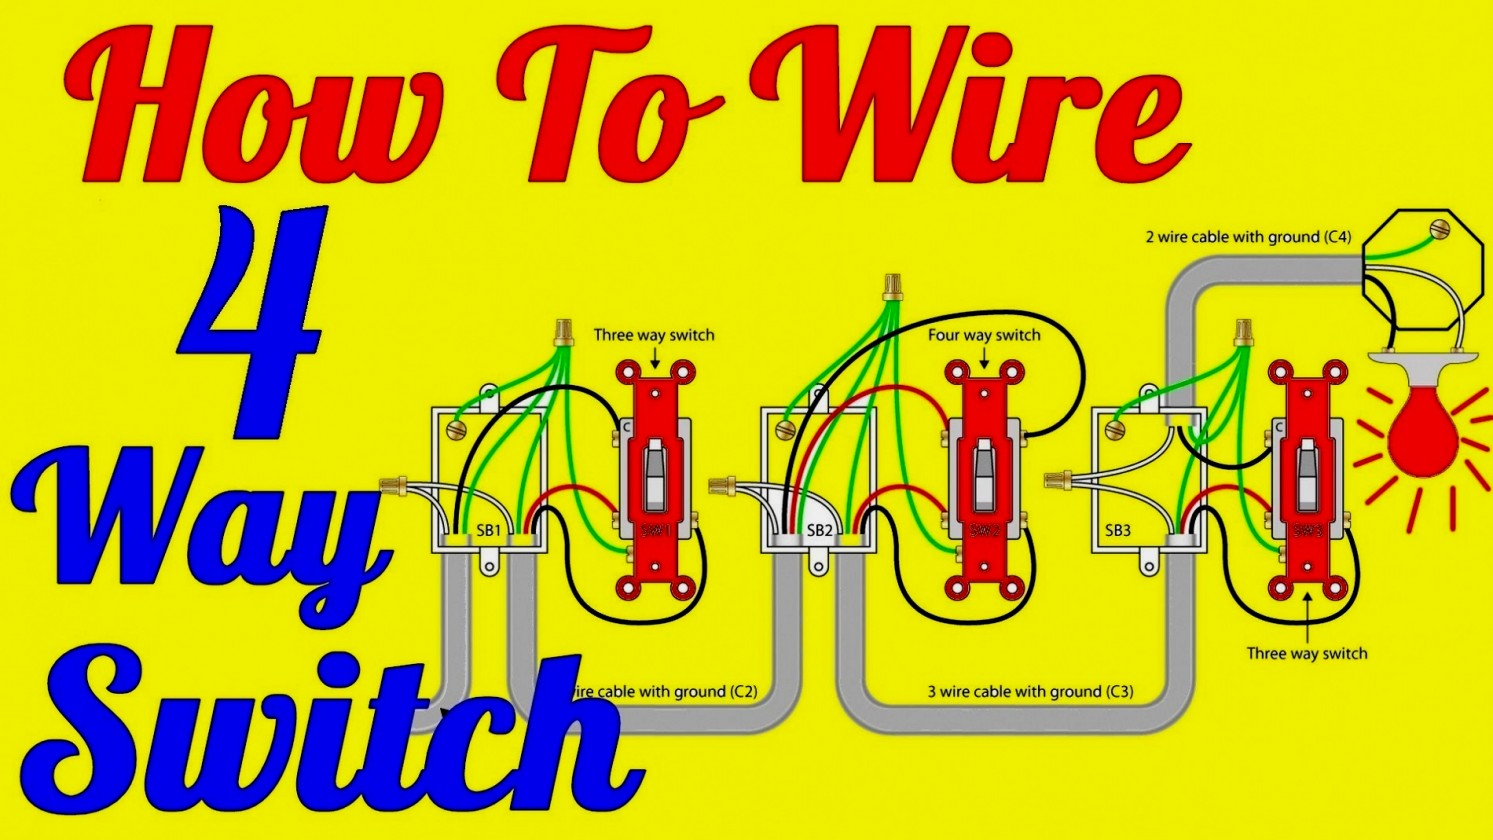 4 Way Wiring Diagram Multiple Lights - All Wiring Diagram - 3 Way Light Switch Wiring Diagram Multiple Lights